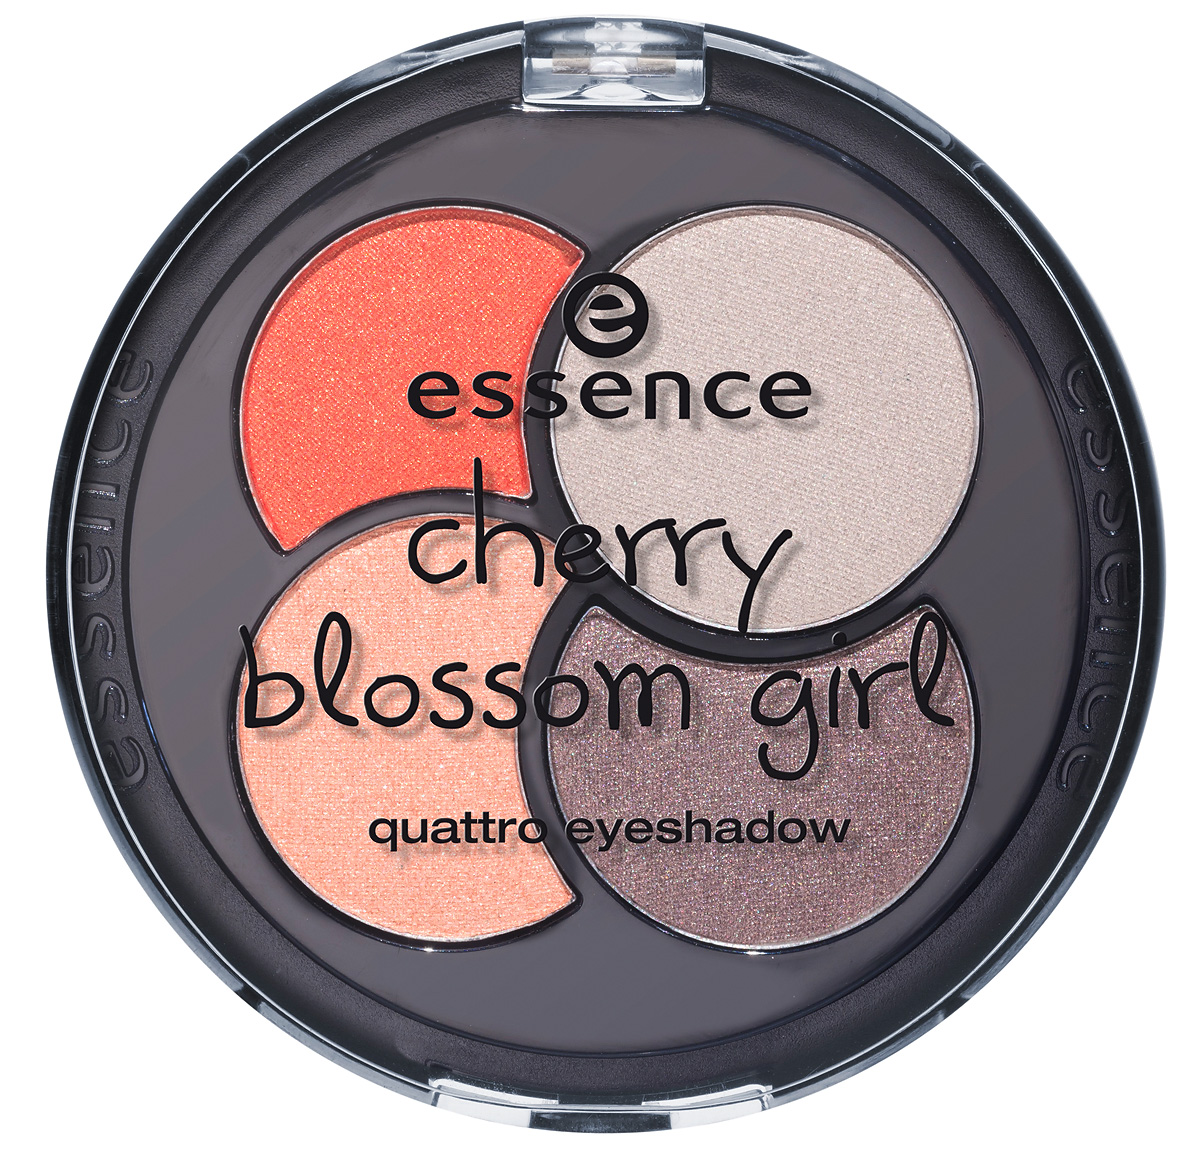 essence cherry blossom girl – quattro eyeshadow